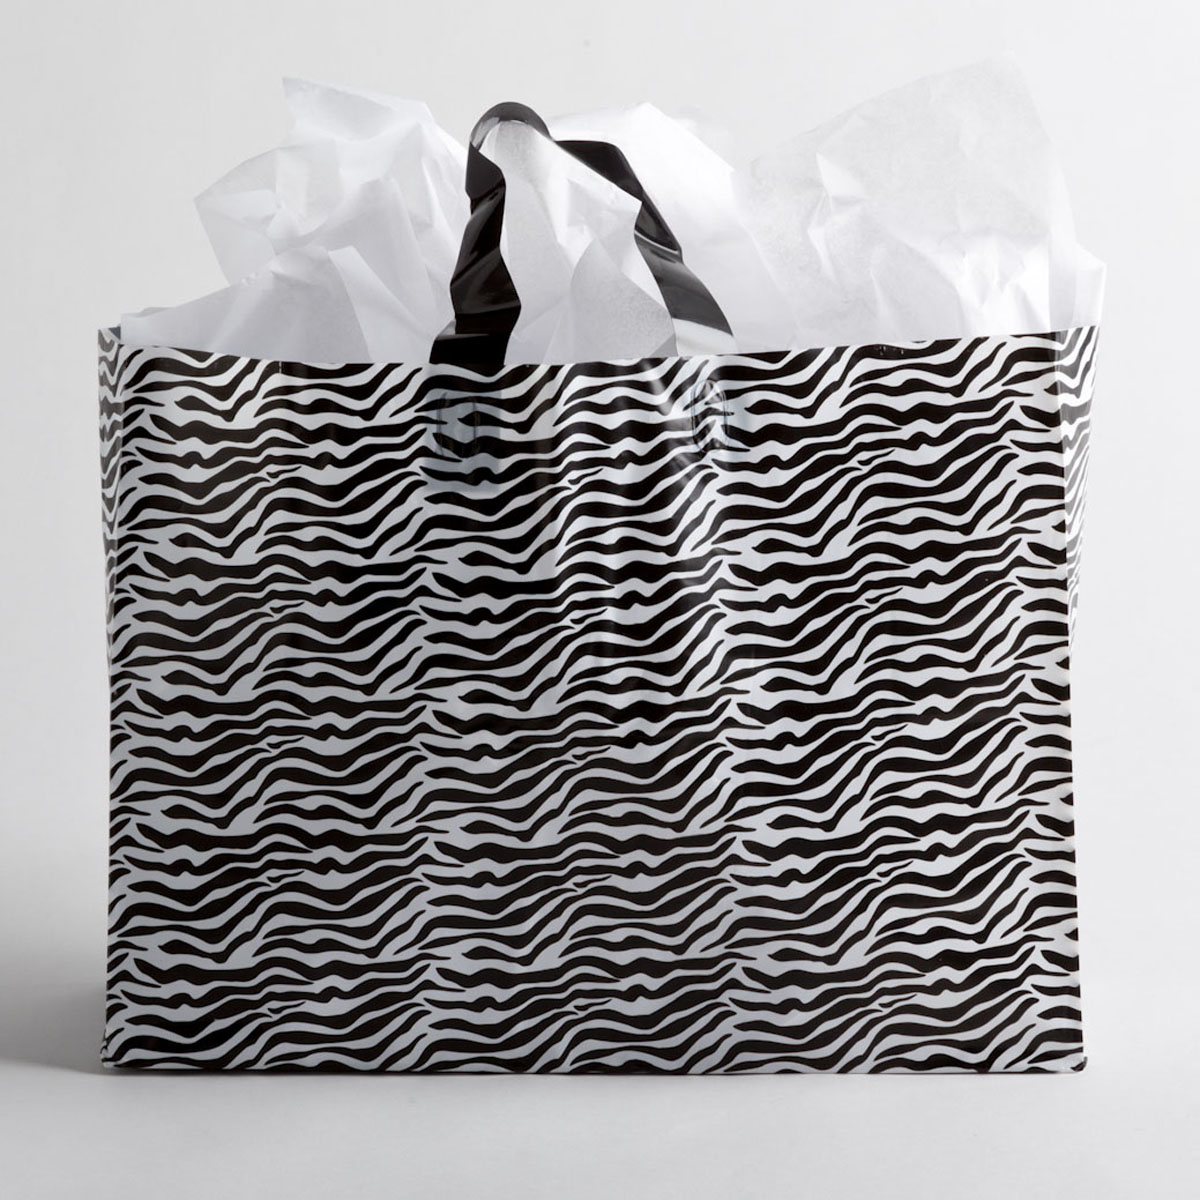 Zebra Print Plastic Shopping Bags Large A Amp B Store Fixtures